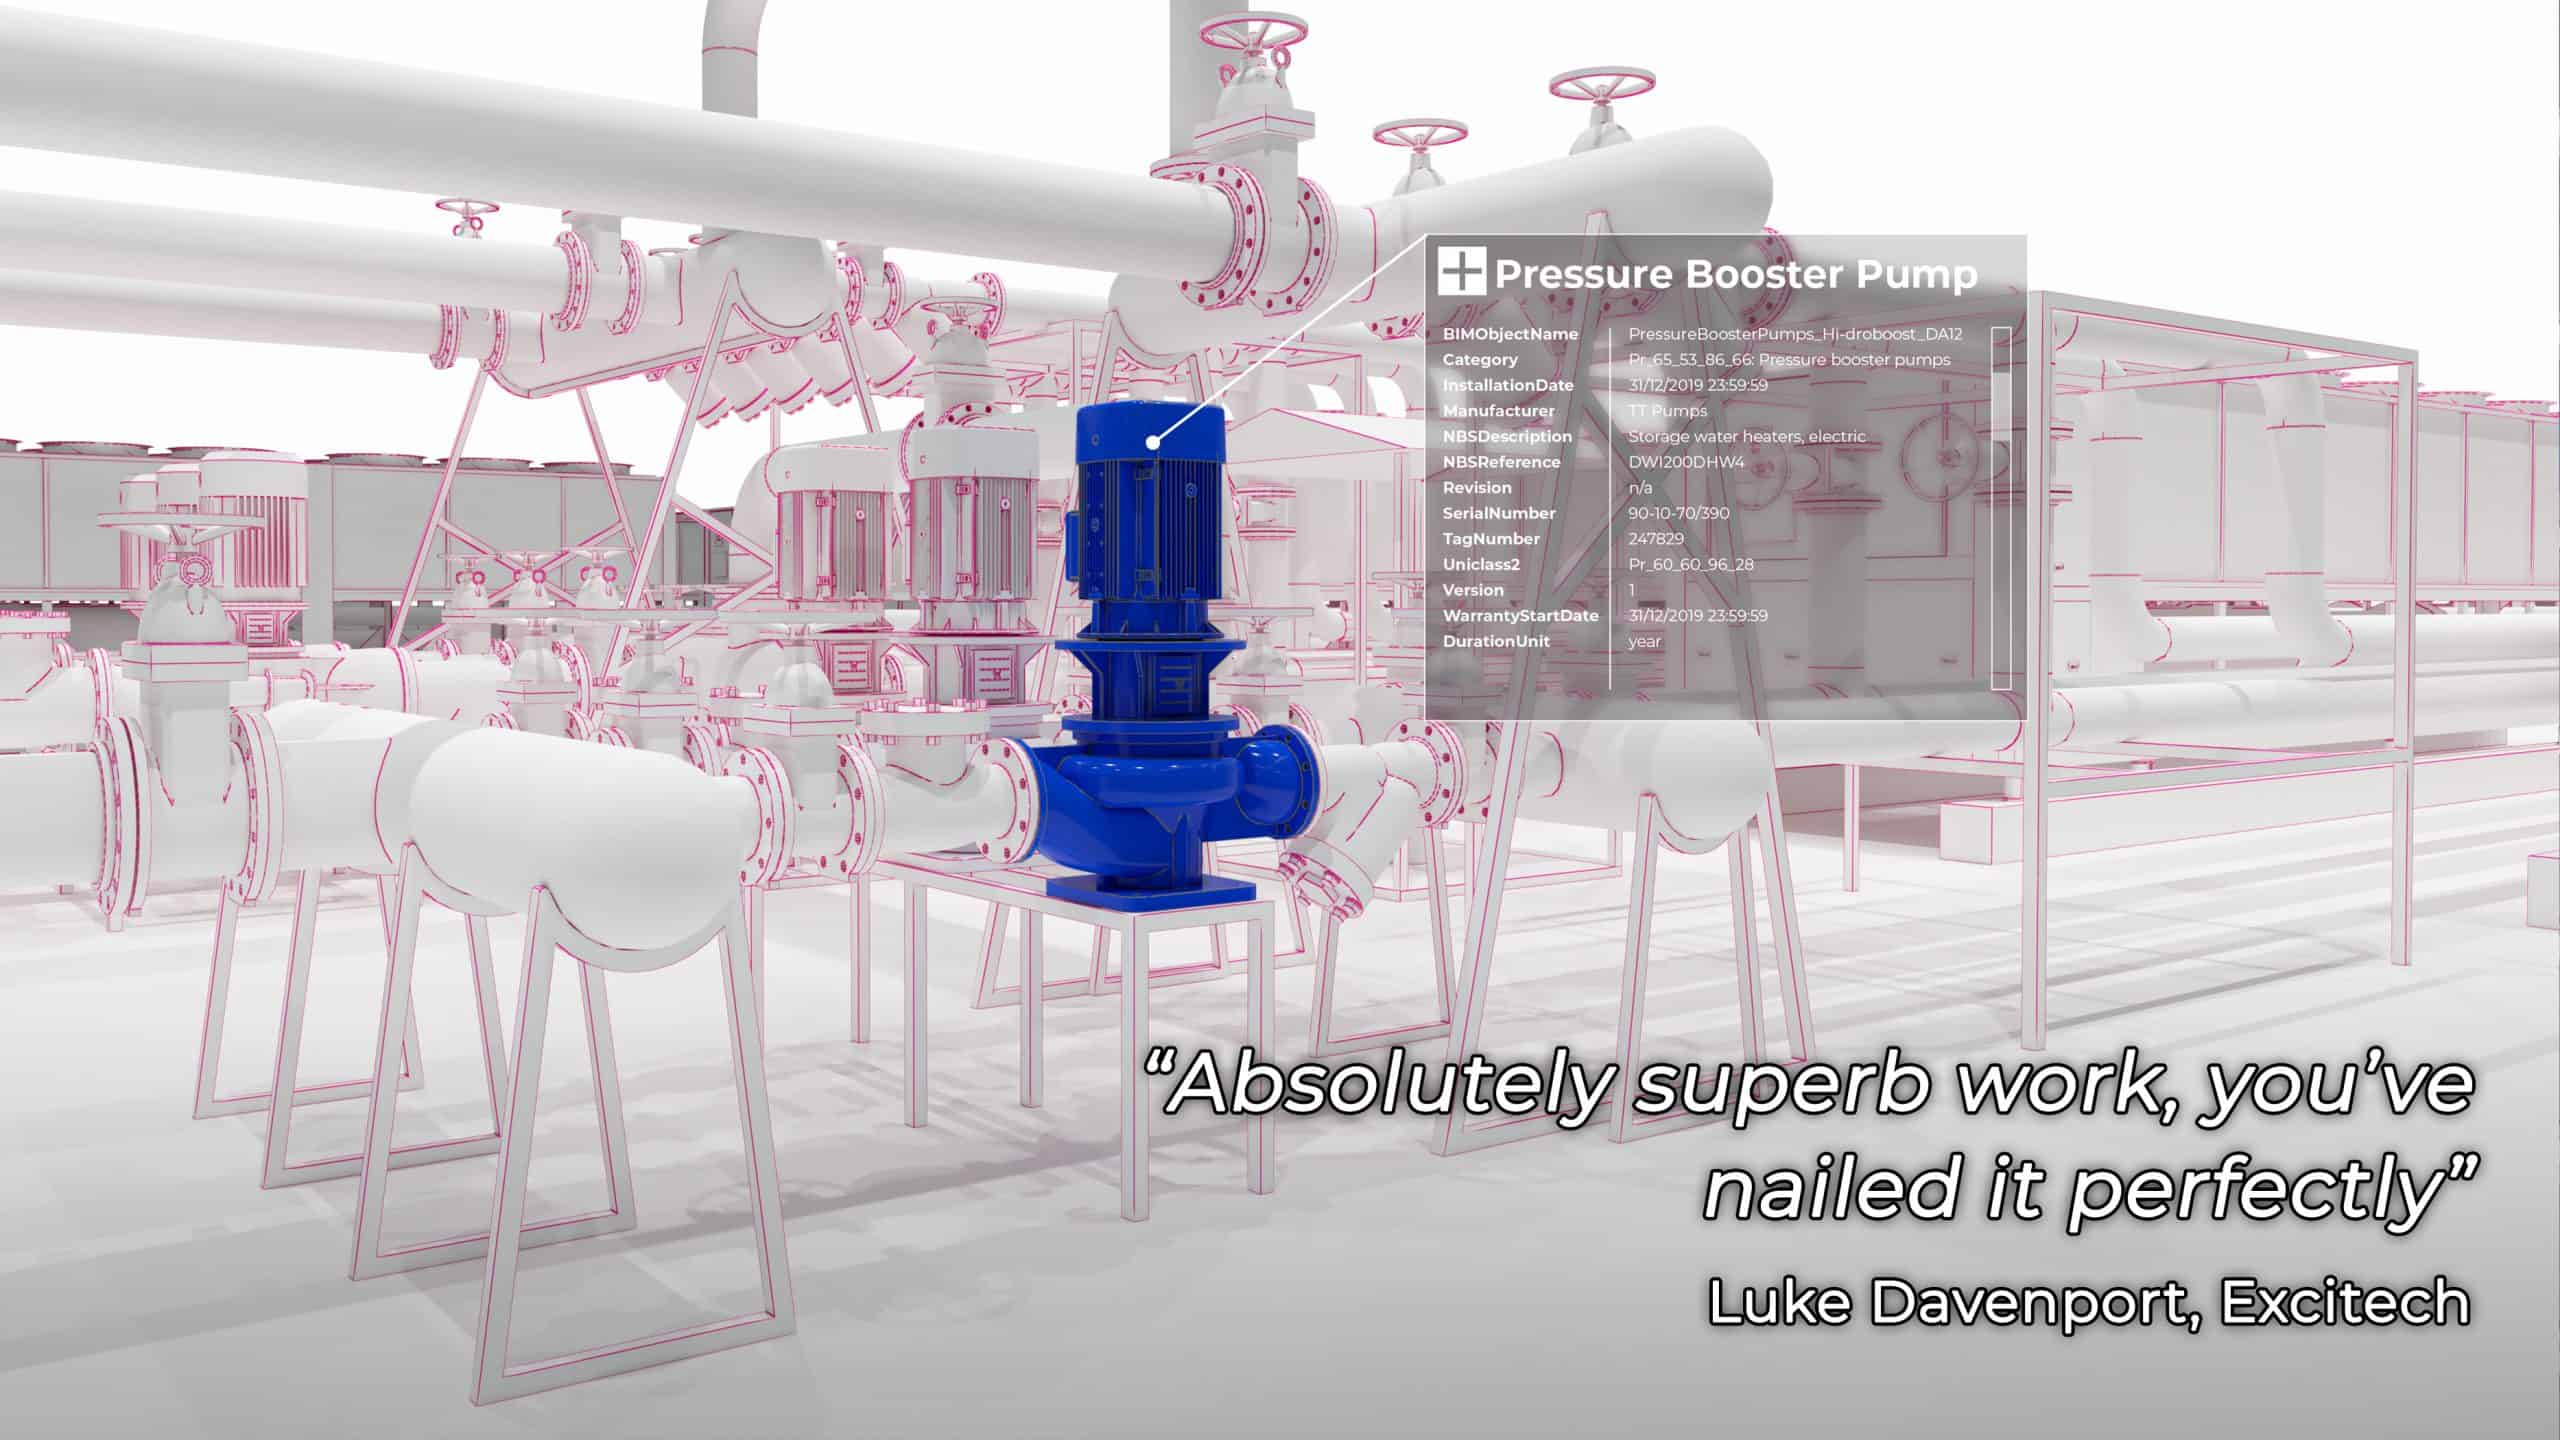 """BIM model of pressure booster pump with testimonial: """"Absolutely superb work, you've nailed it perfectly"""" Luke Davenport, Excitech"""